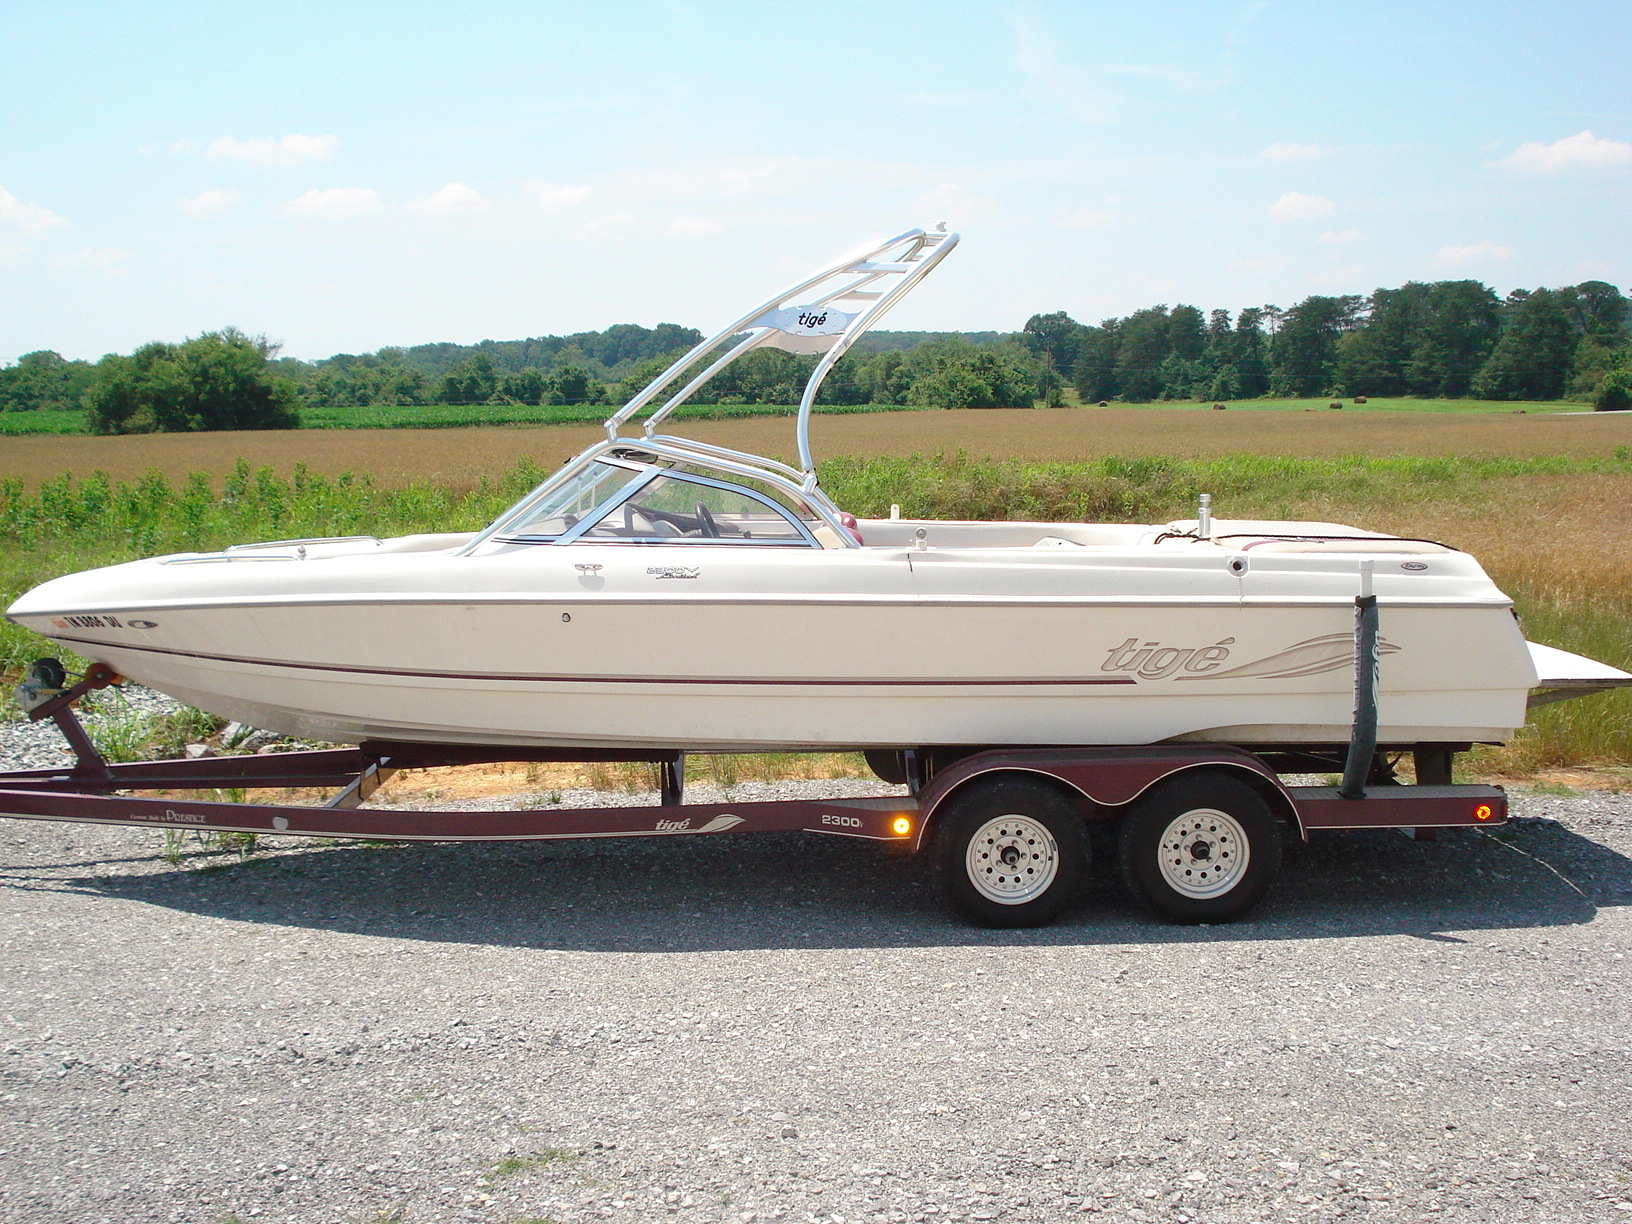 main view of 98 - 01 tige 2300V wake boat with new dimension tower